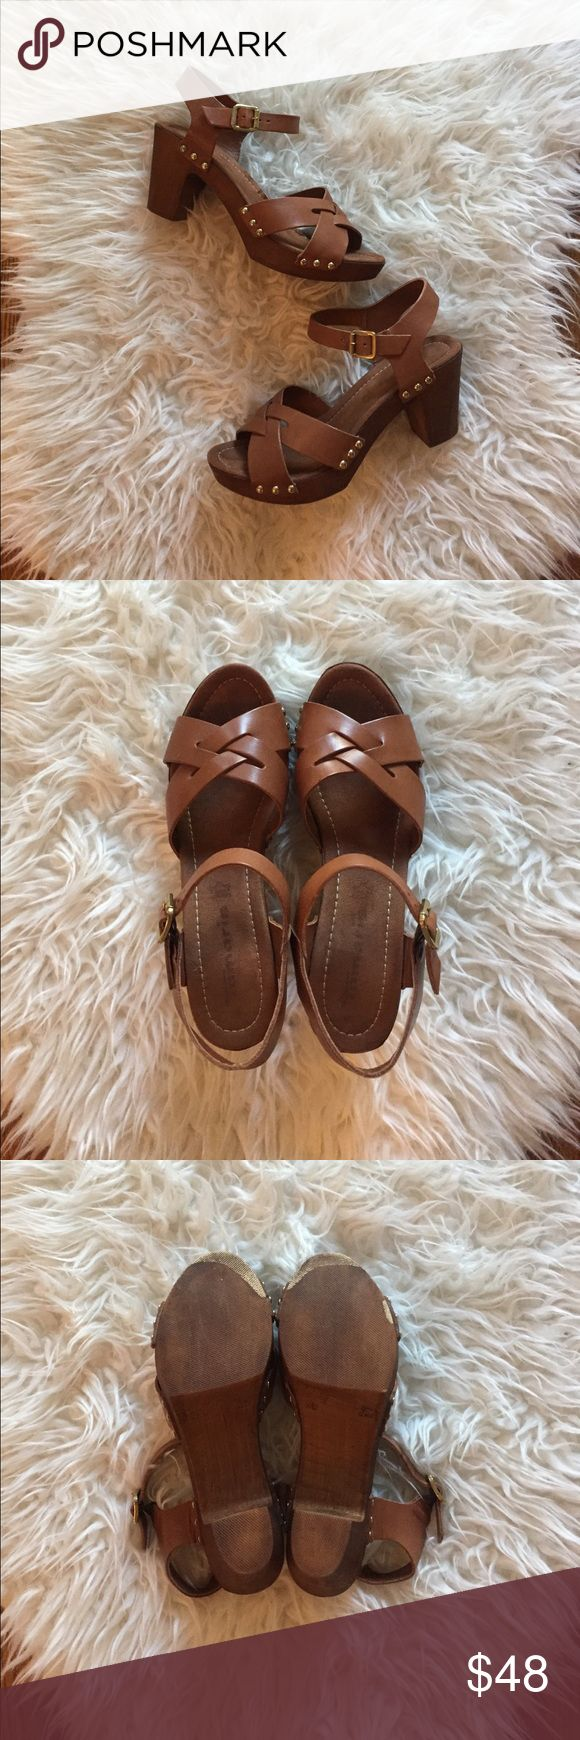 Heeled wooden clog sandals 70s style Like new!  Made in Italy by Tamaris (tagged as Hasbeens for exposure). Marked size 39...fit like an 8. Swedish Hasbeens Shoes Mules & Clogs